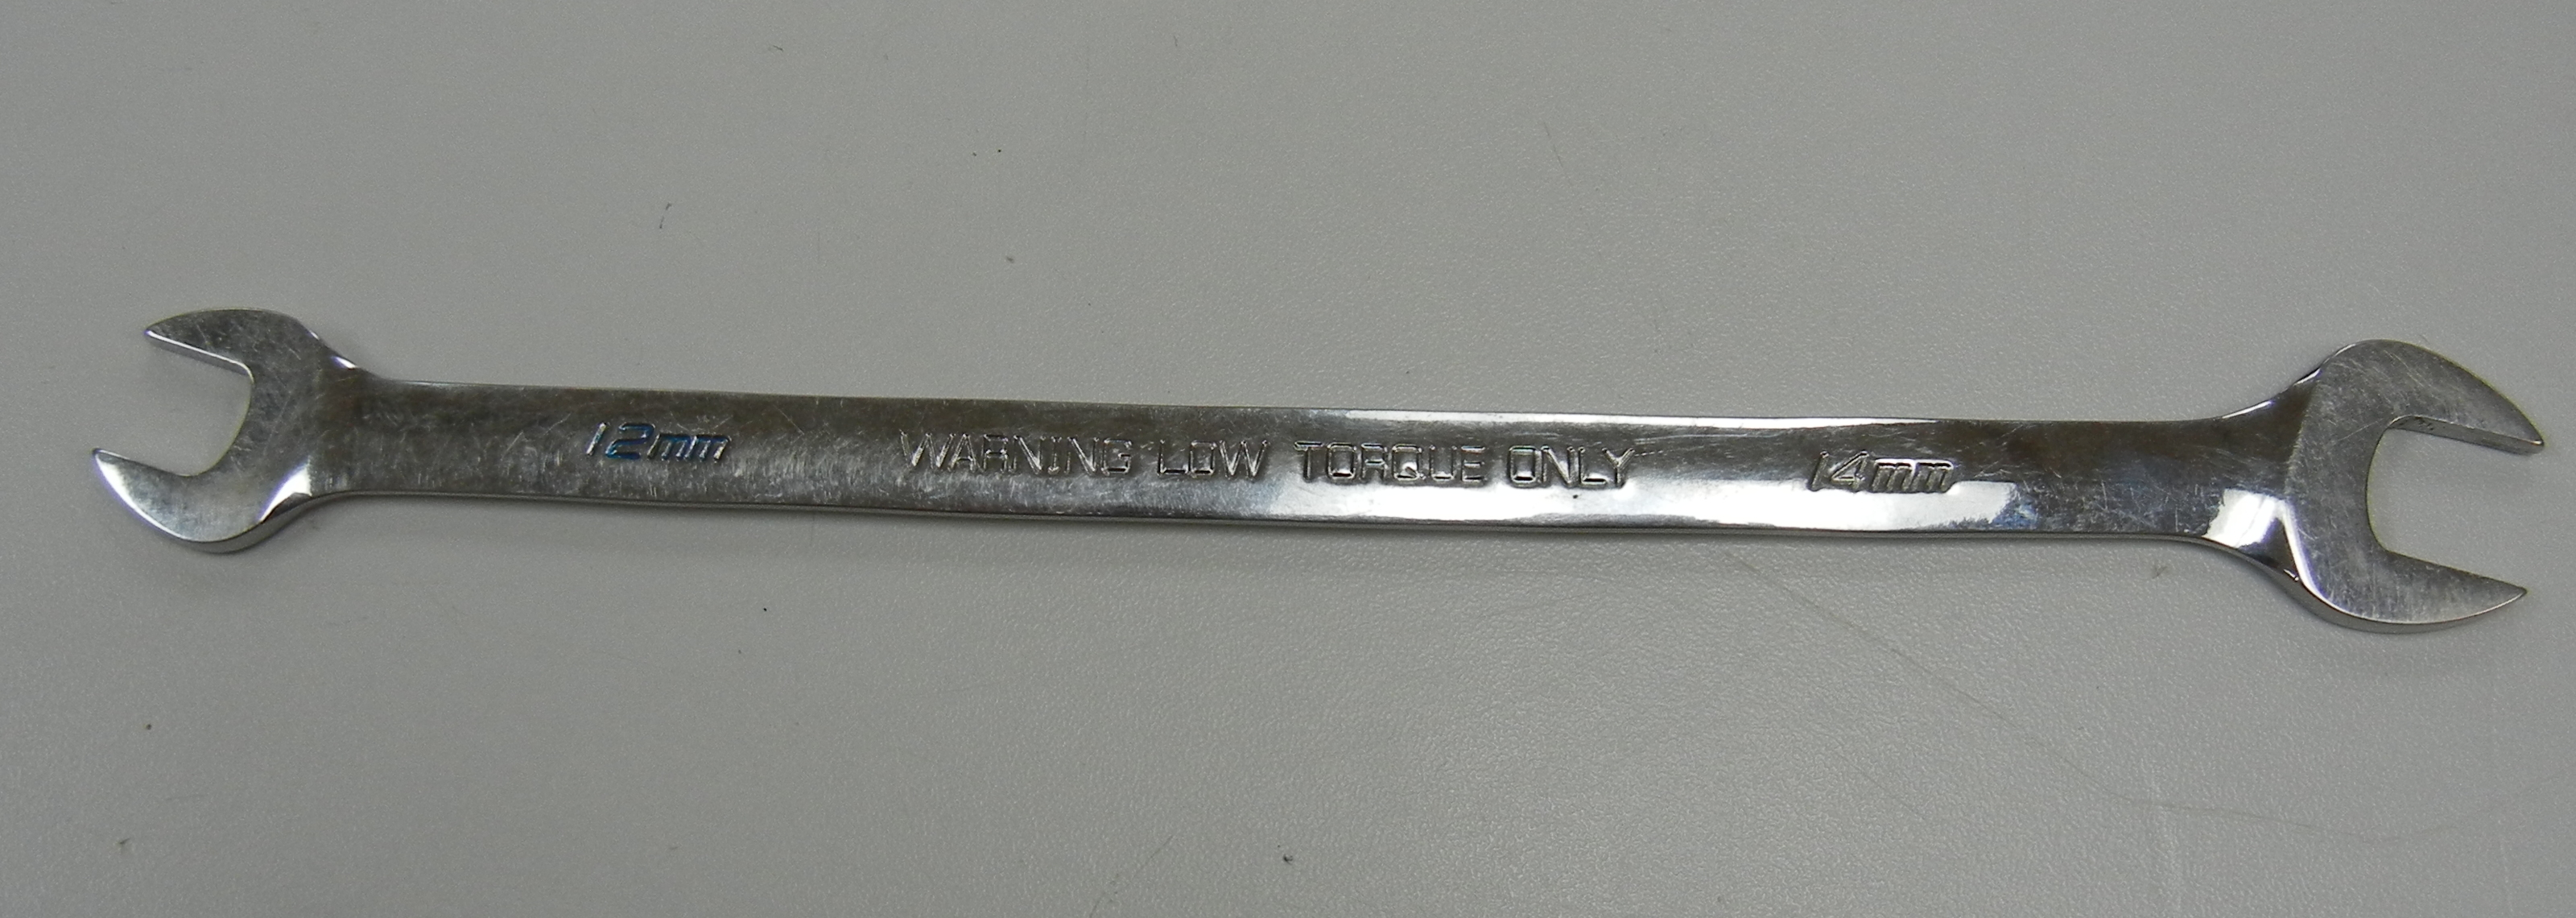 SNAP-ON - LTAM1214 - WRENCH - 12 MM TO 14 MM